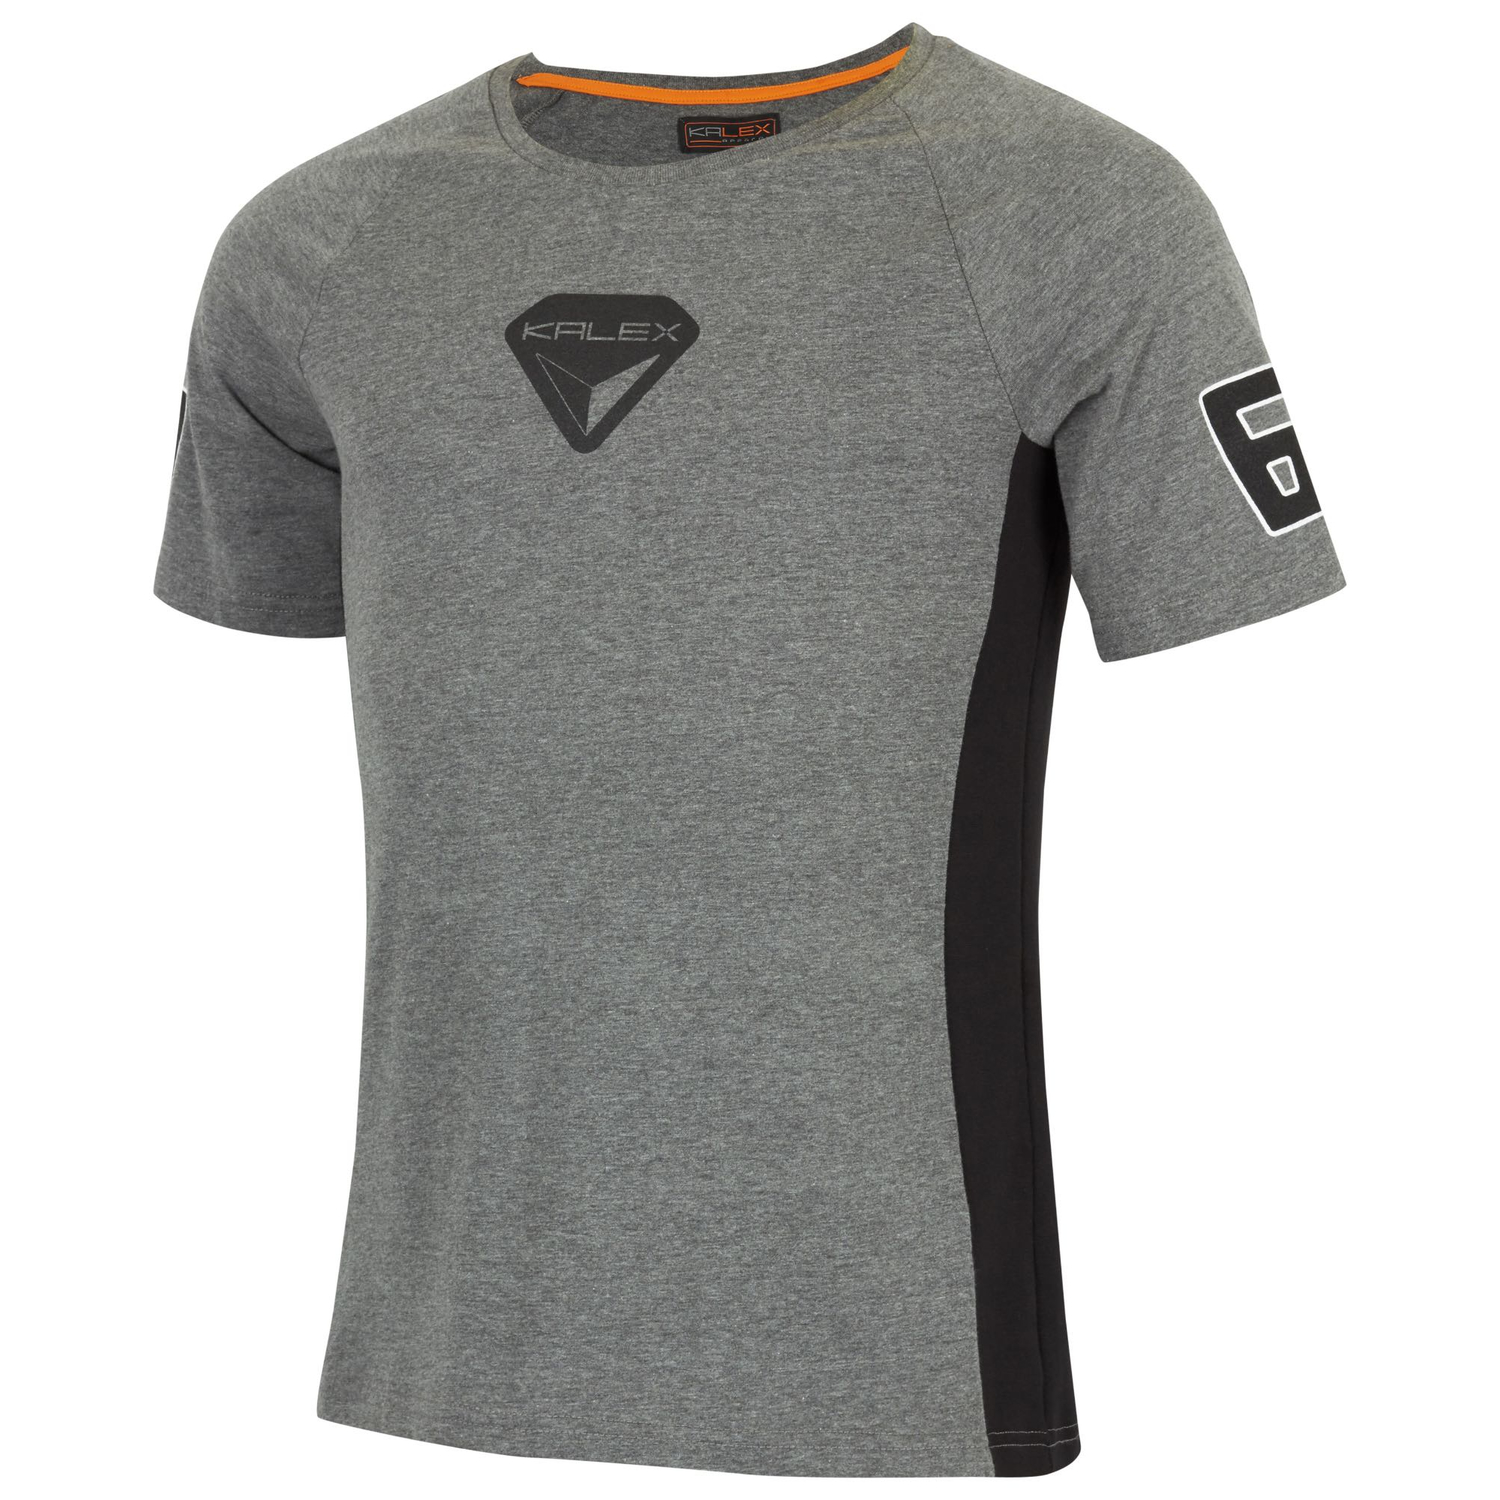 T-SHIRT SPEED DRUCK GRAU XXL